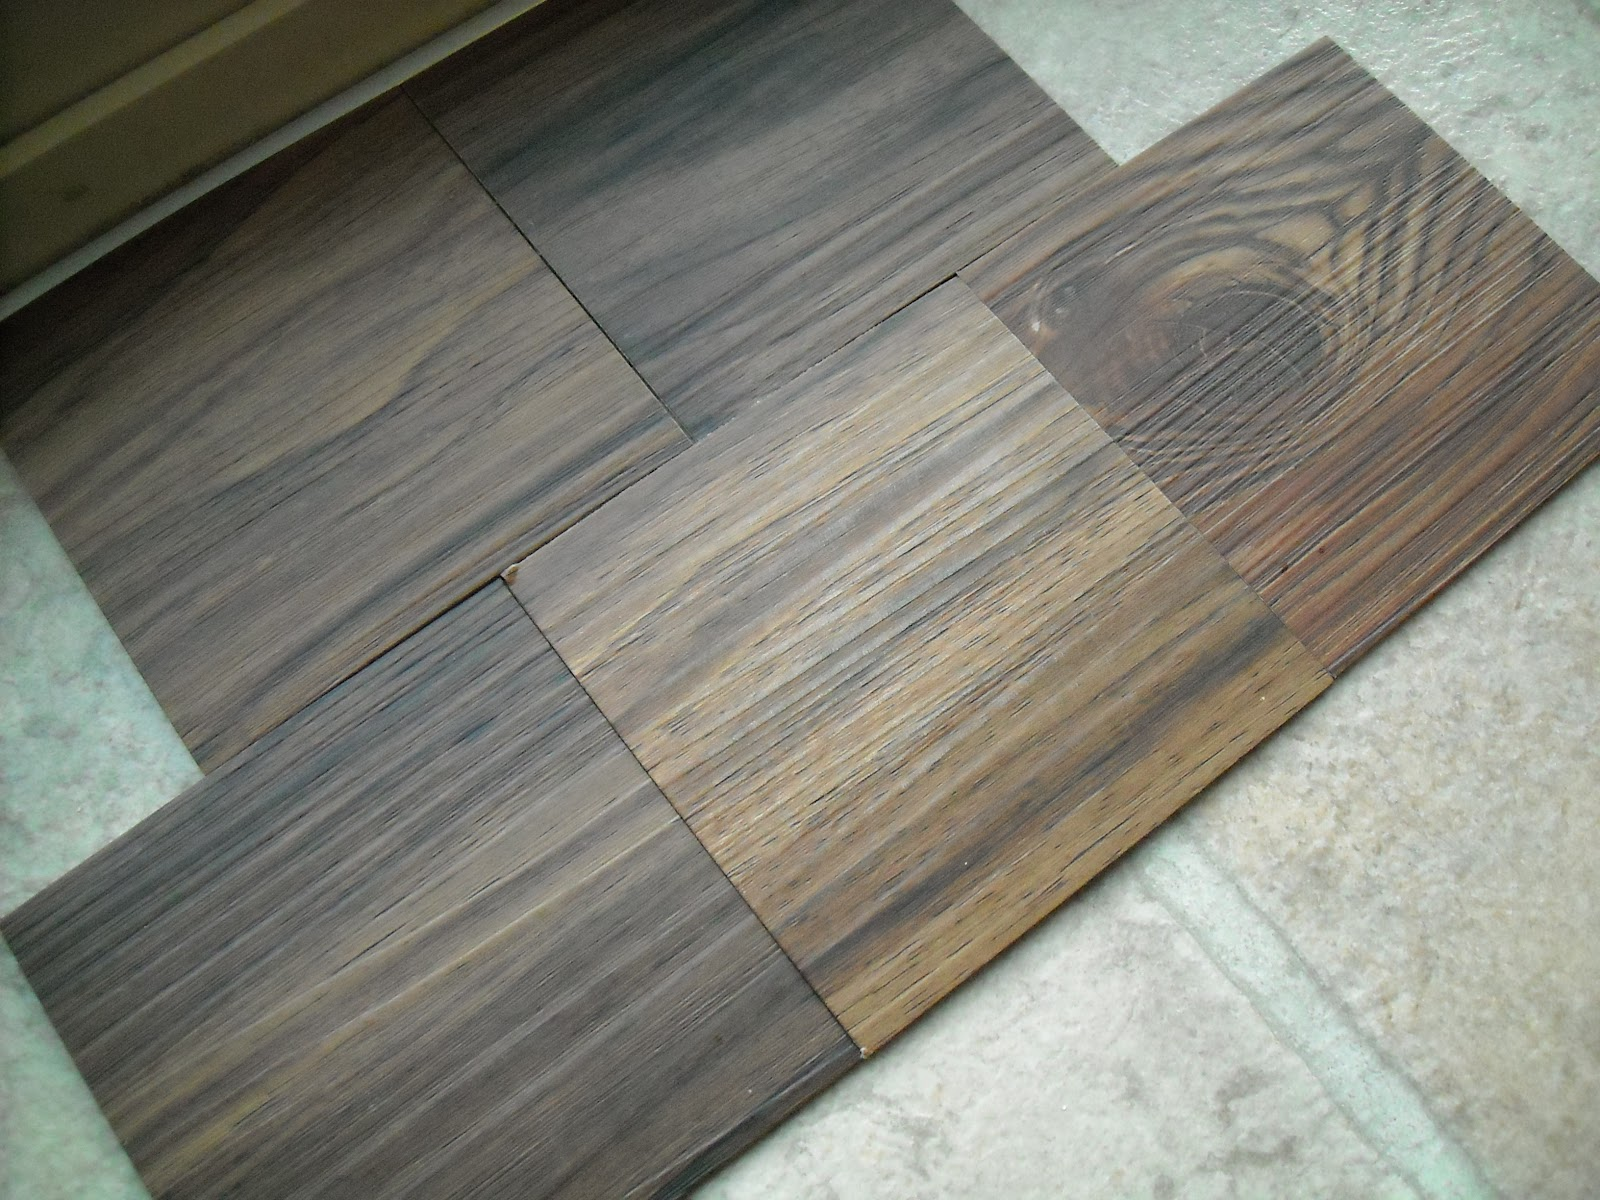 How To Install Grip Strip Plank Flooring Viewfloor Co